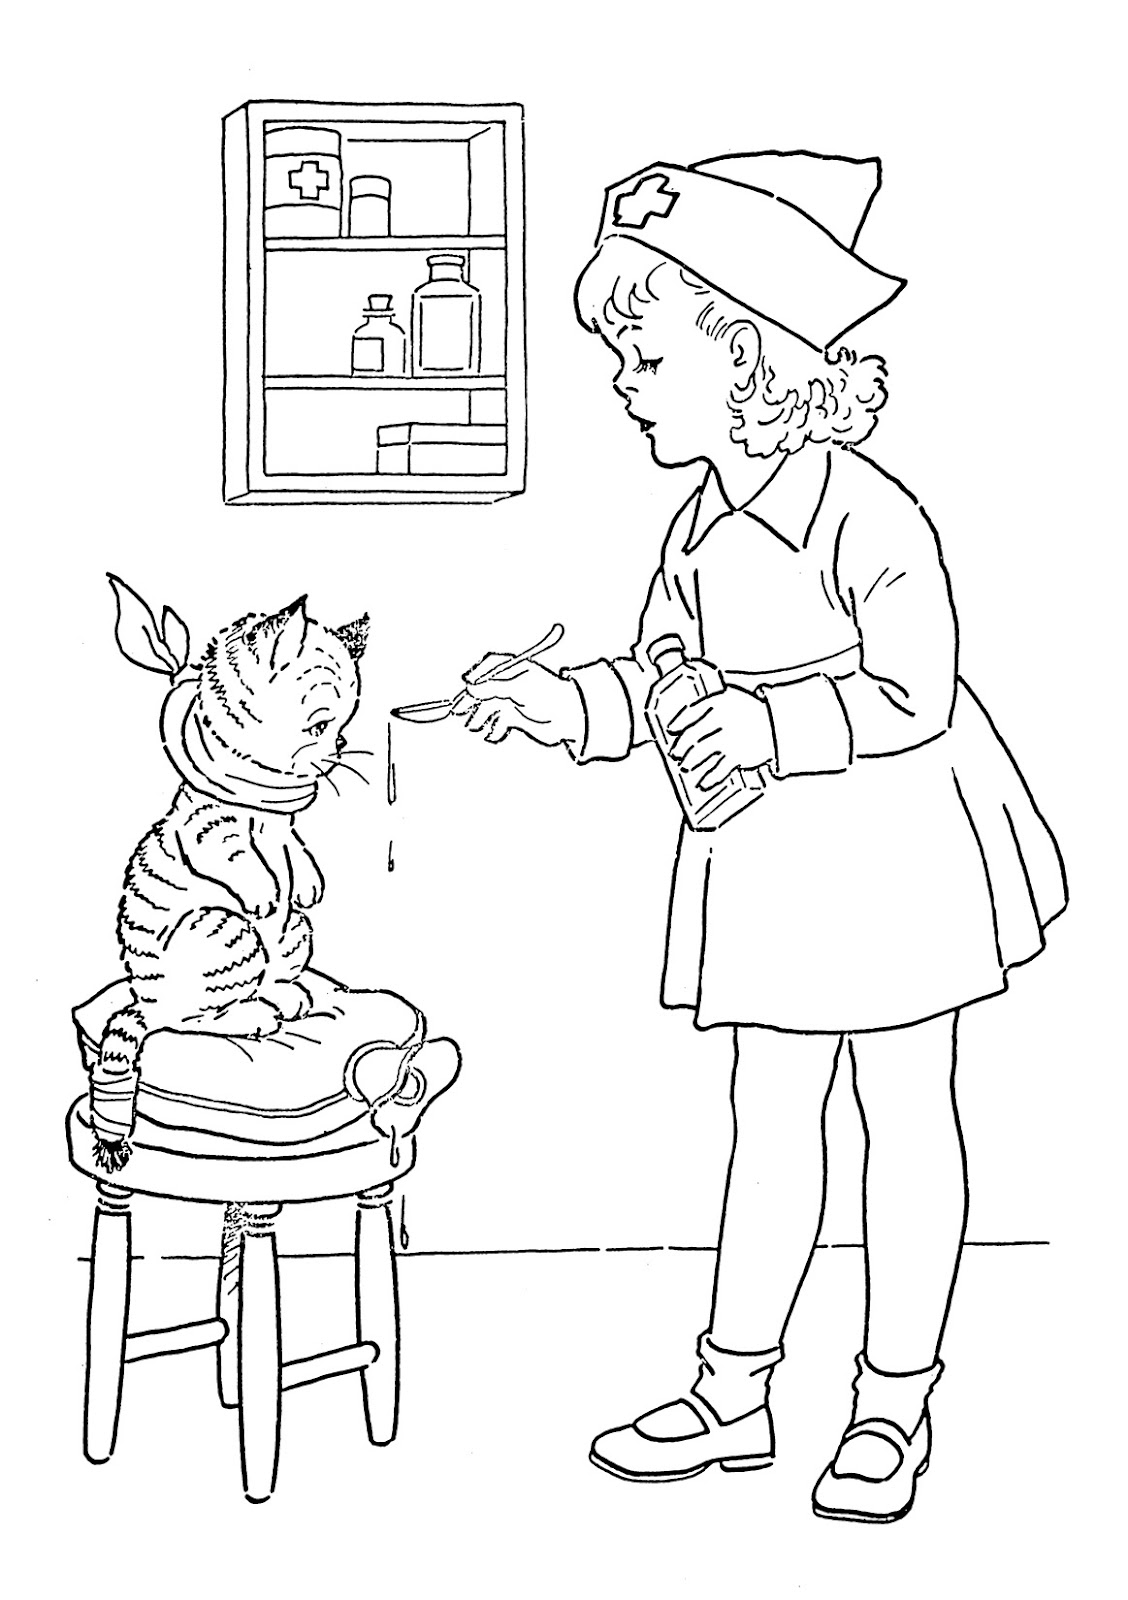 nurse coloring pages nurse coloring pages for preschool at getcoloringscom pages coloring nurse